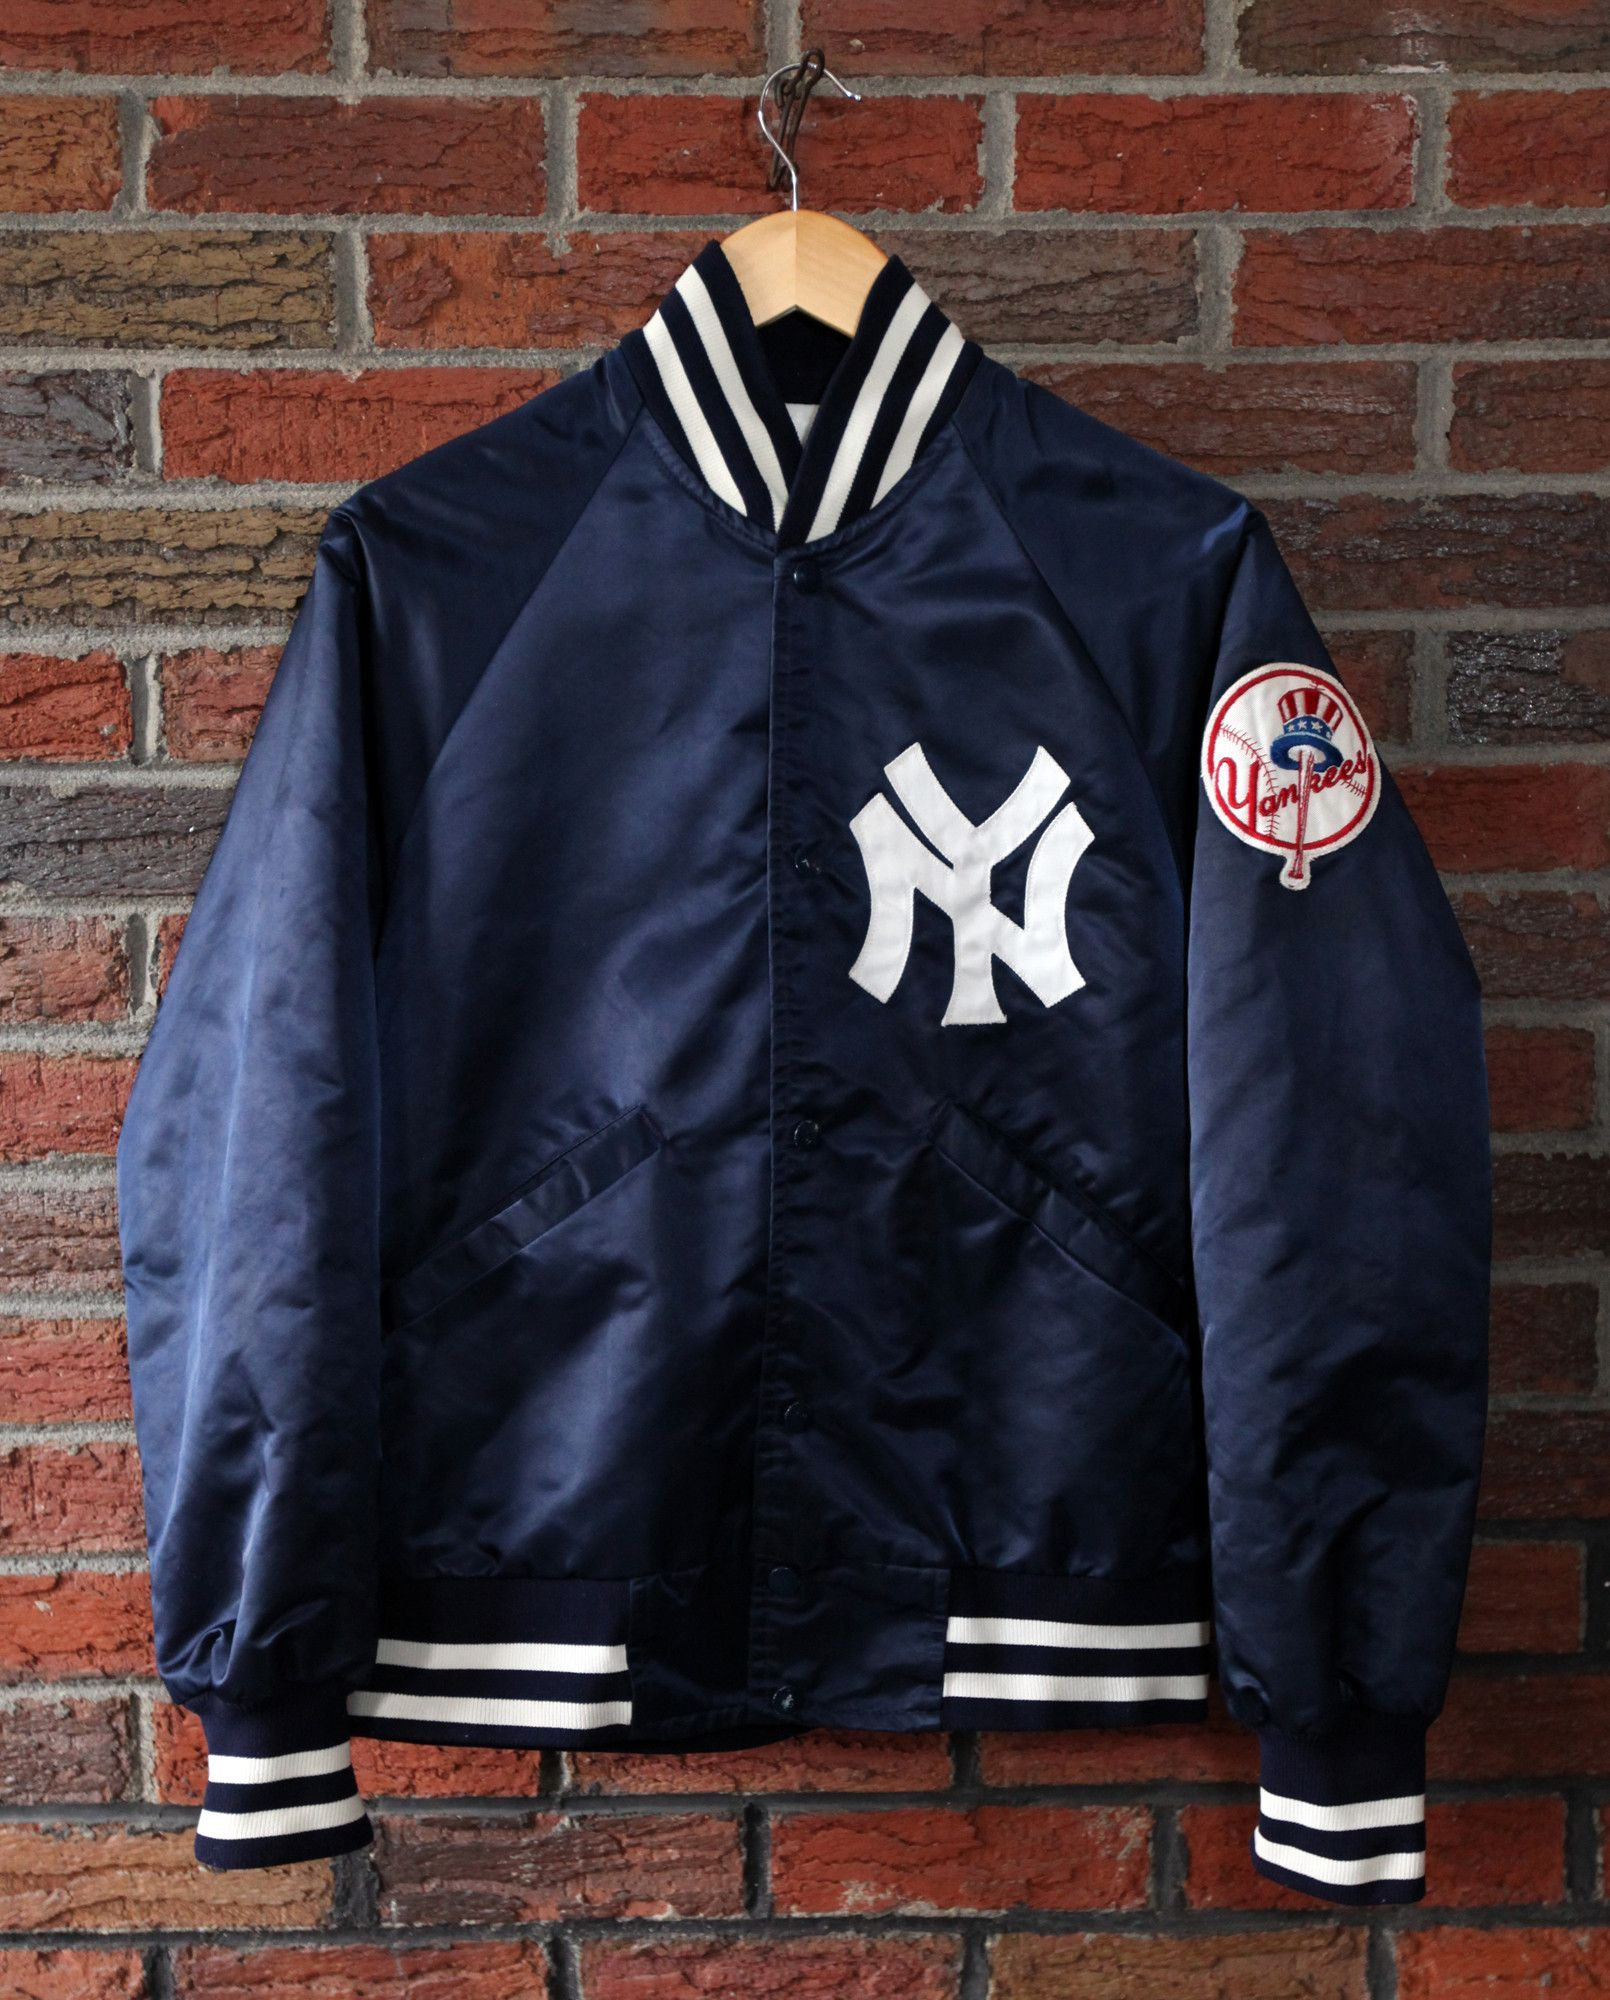 9b6bb982 Vintage 70's / 80's New York Yankees Starter Satin Jacket SZ S ...